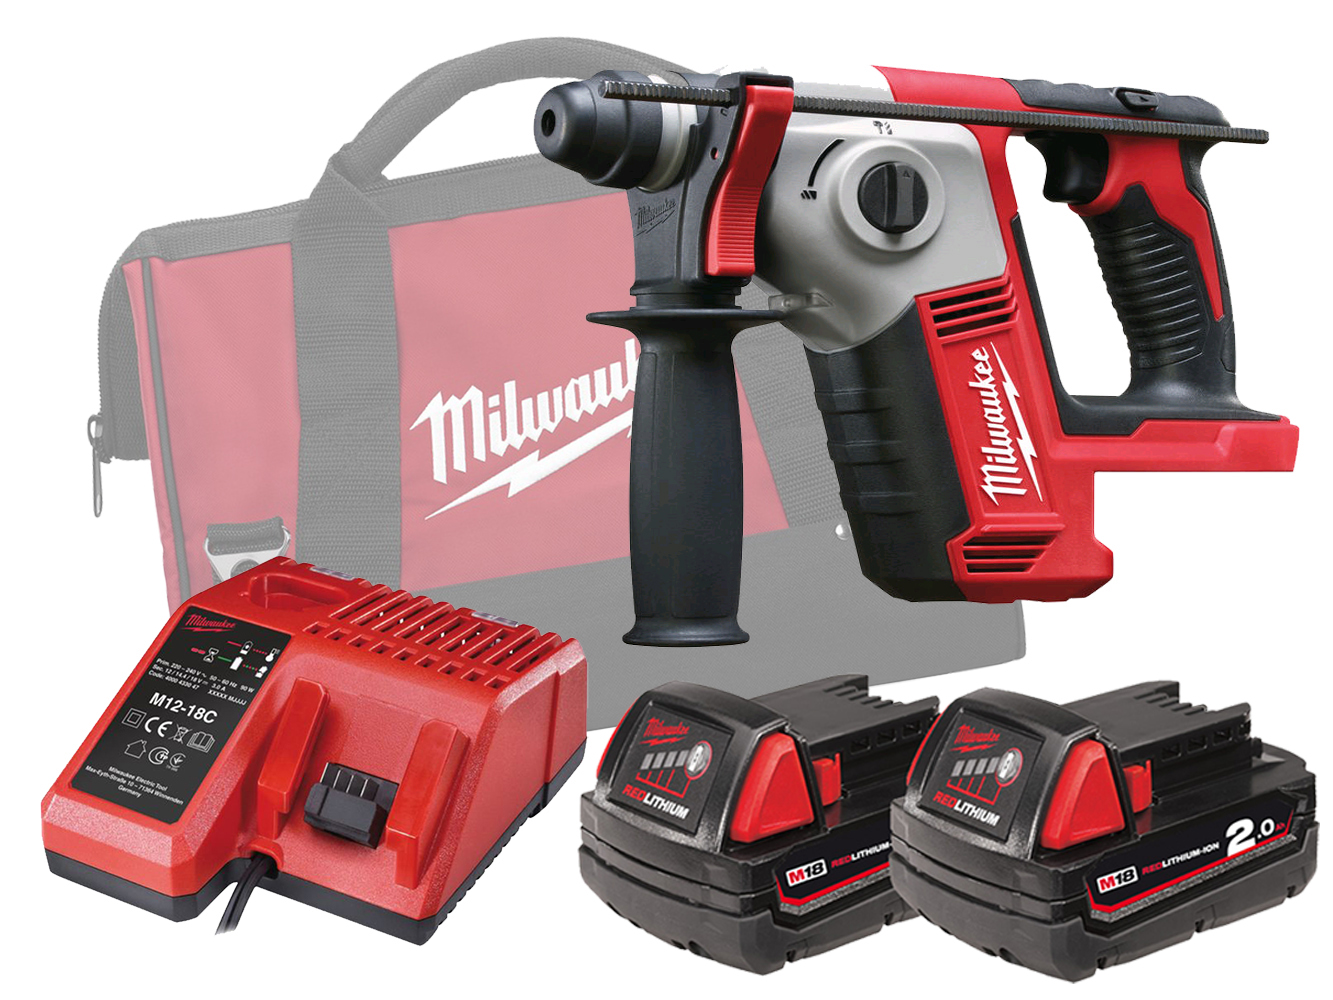 MILWAUKEE 18V COMPACT SDS+ 2 MODE ROTARY HAMMER - M18BH - 2.0AH PACK